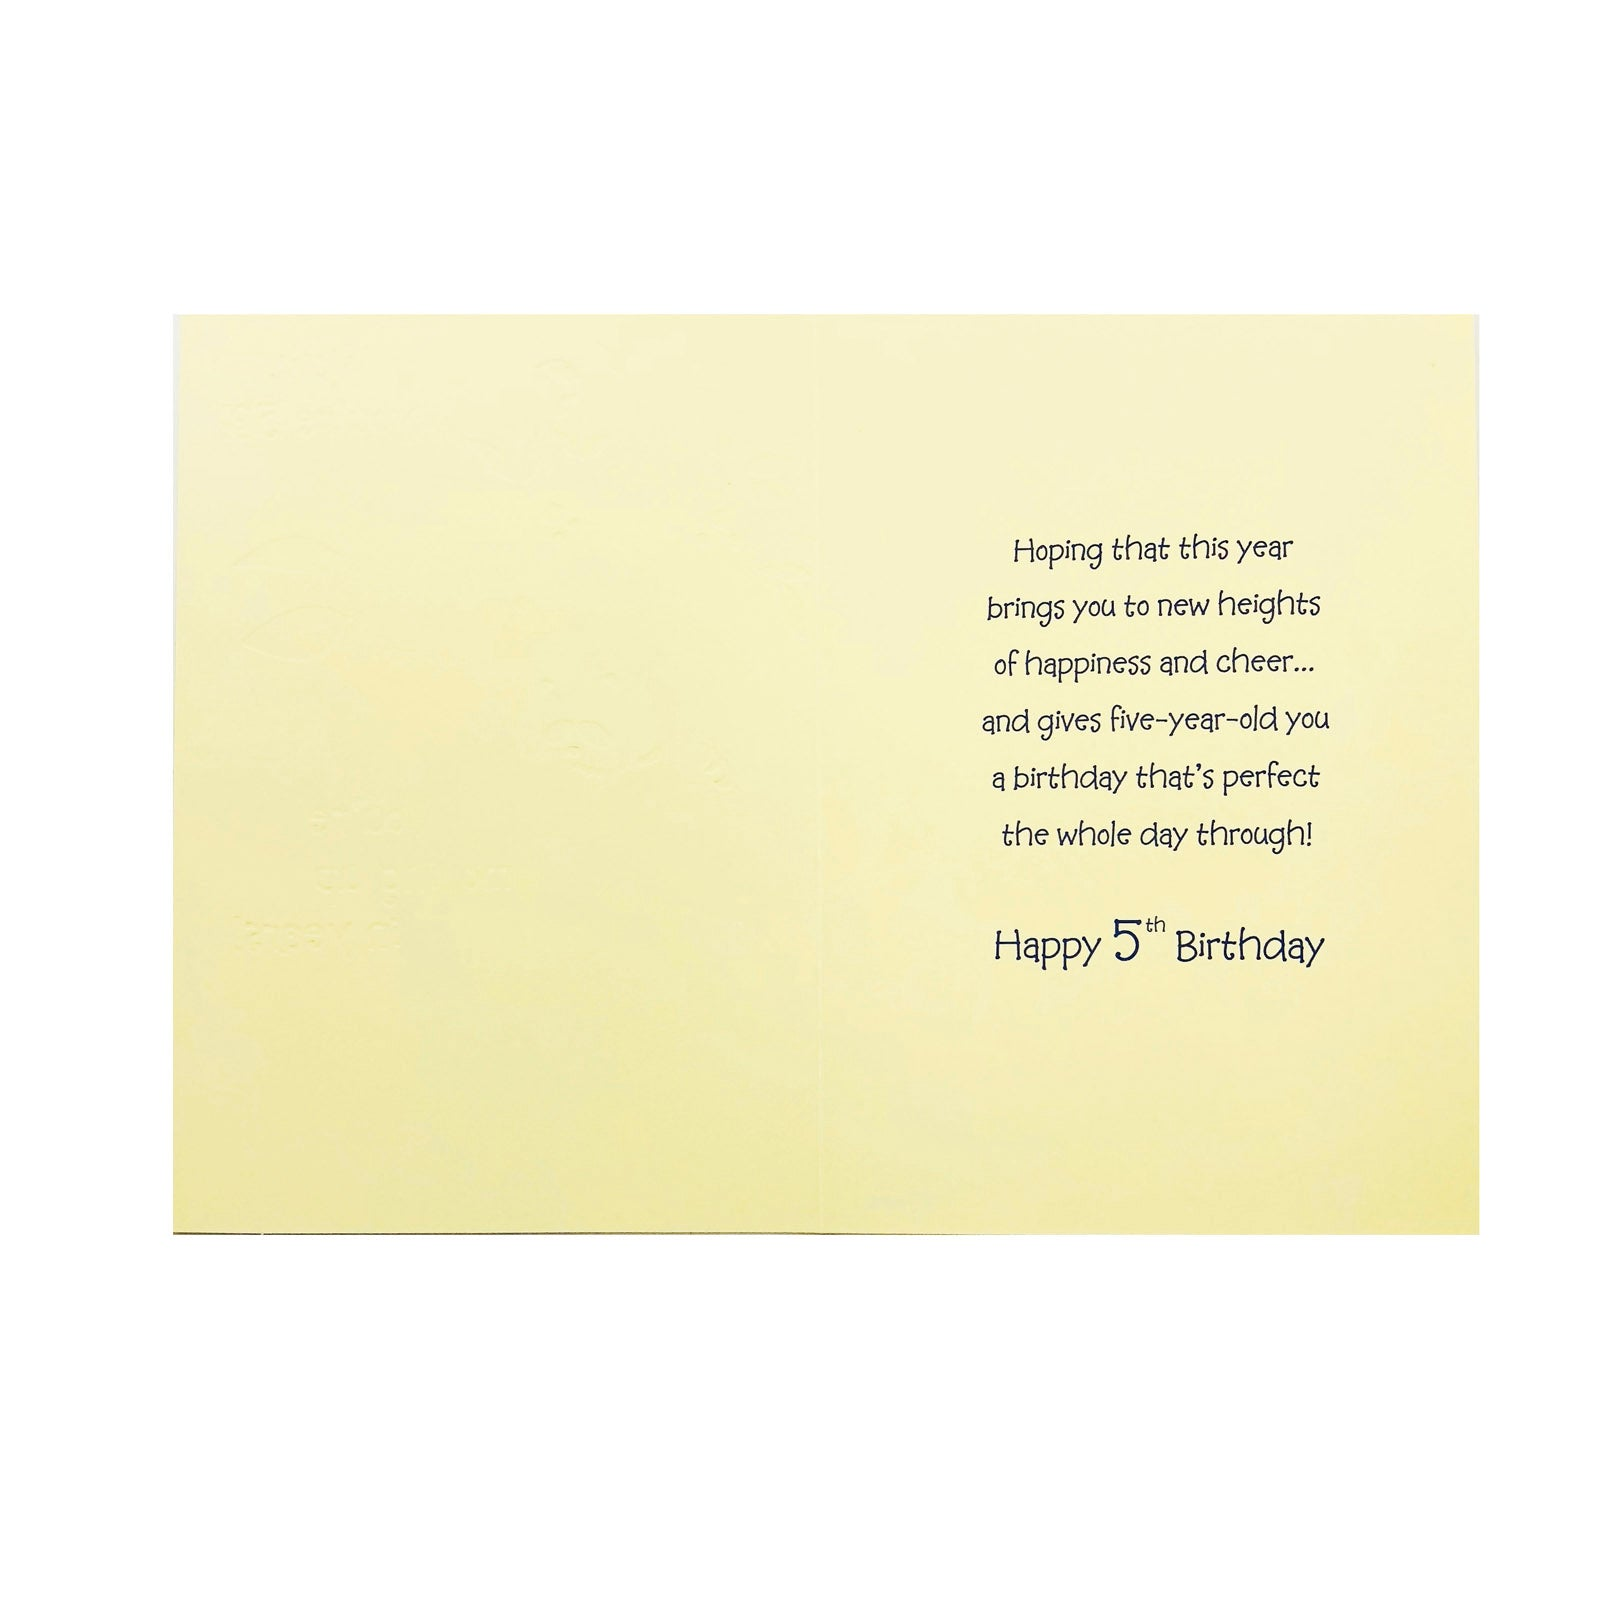 Designer Greetings Birthday Card Age 5 - Wow You're 5? - Tree